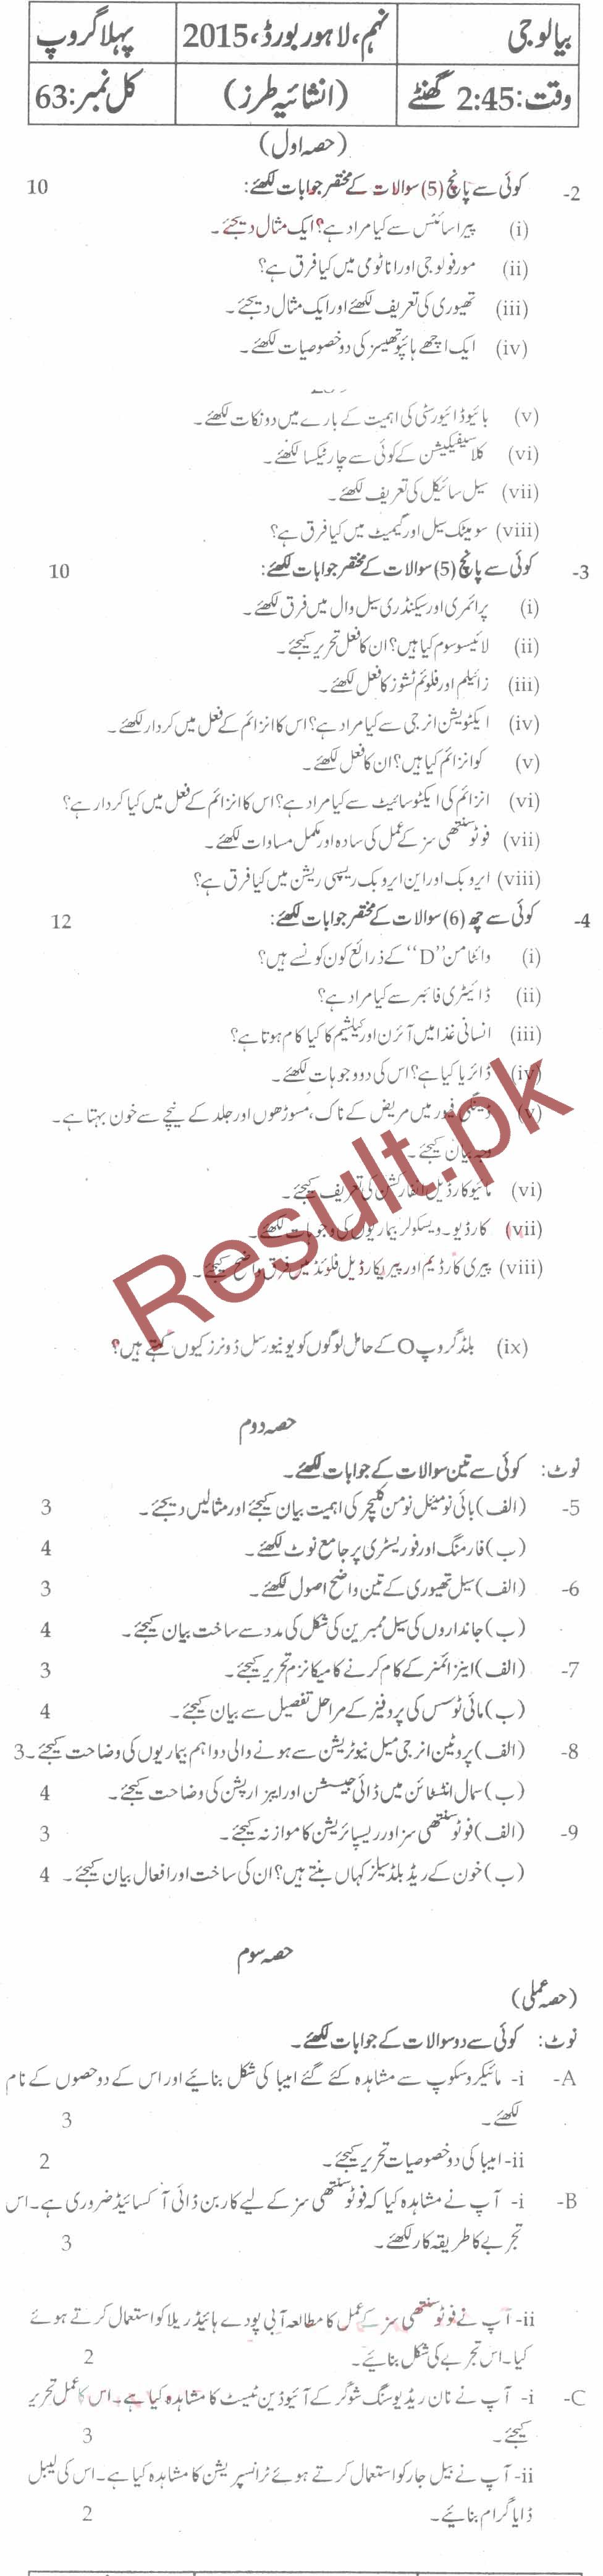 9th class math key book free download urdu medium | Chapter